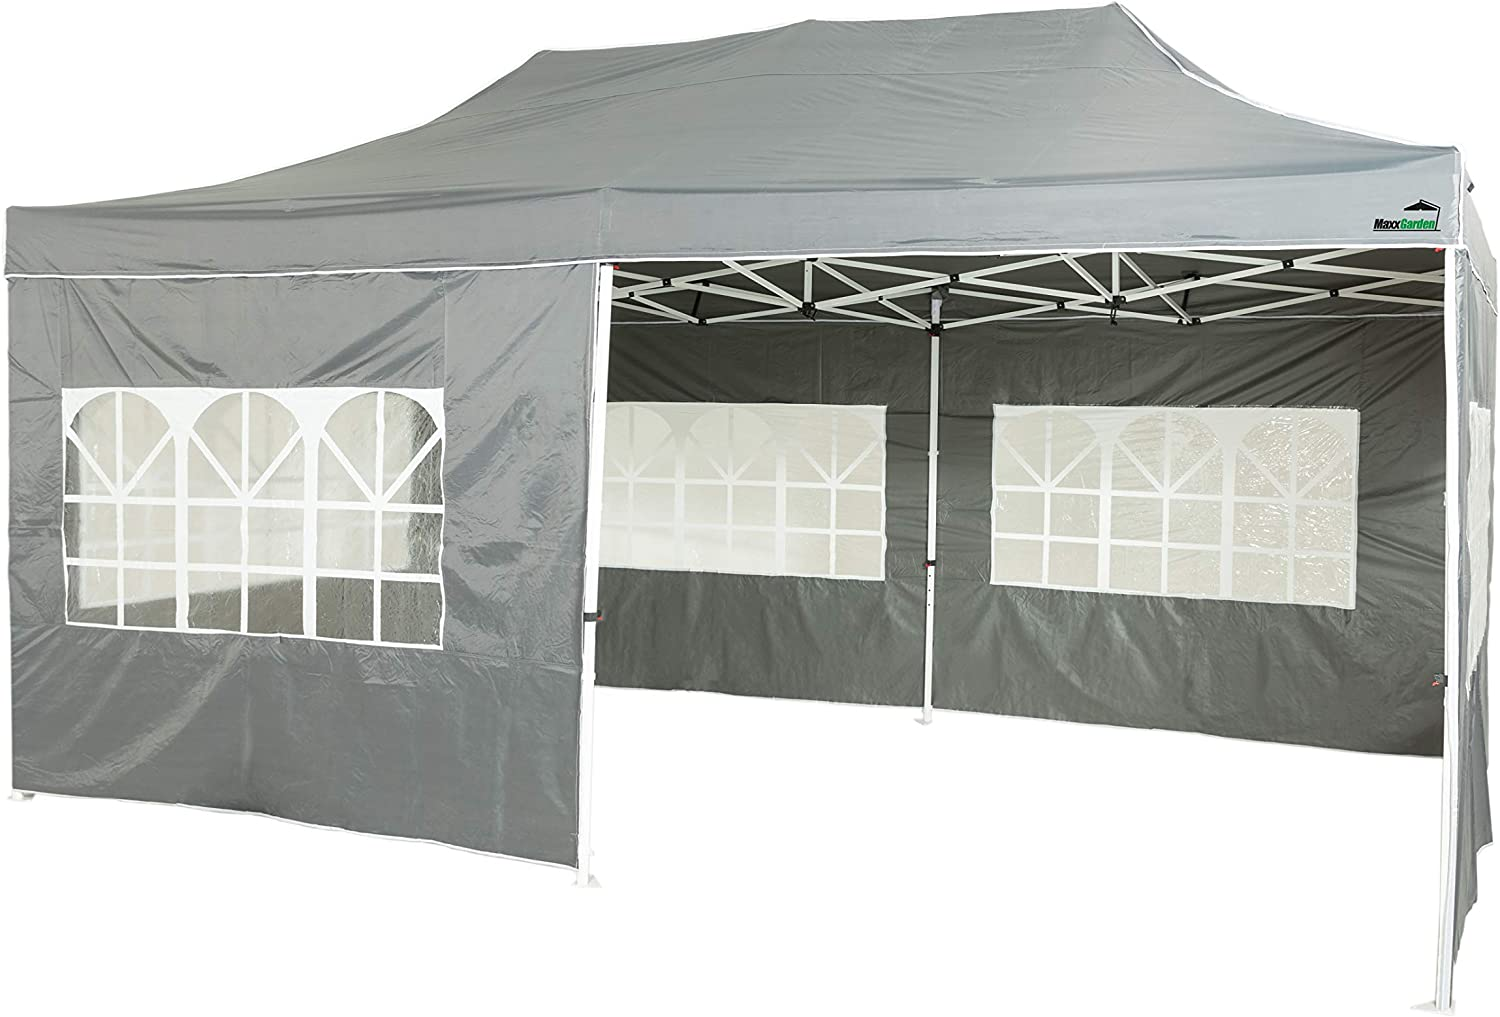 MaxxGarden - Carpa Impermeable de 3 x 4, 5 m, Incluye Bolsa, protección UV 50+, Plegable, para jardín, con Paredes Laterales, Color Antracita: Amazon.es: Jardín